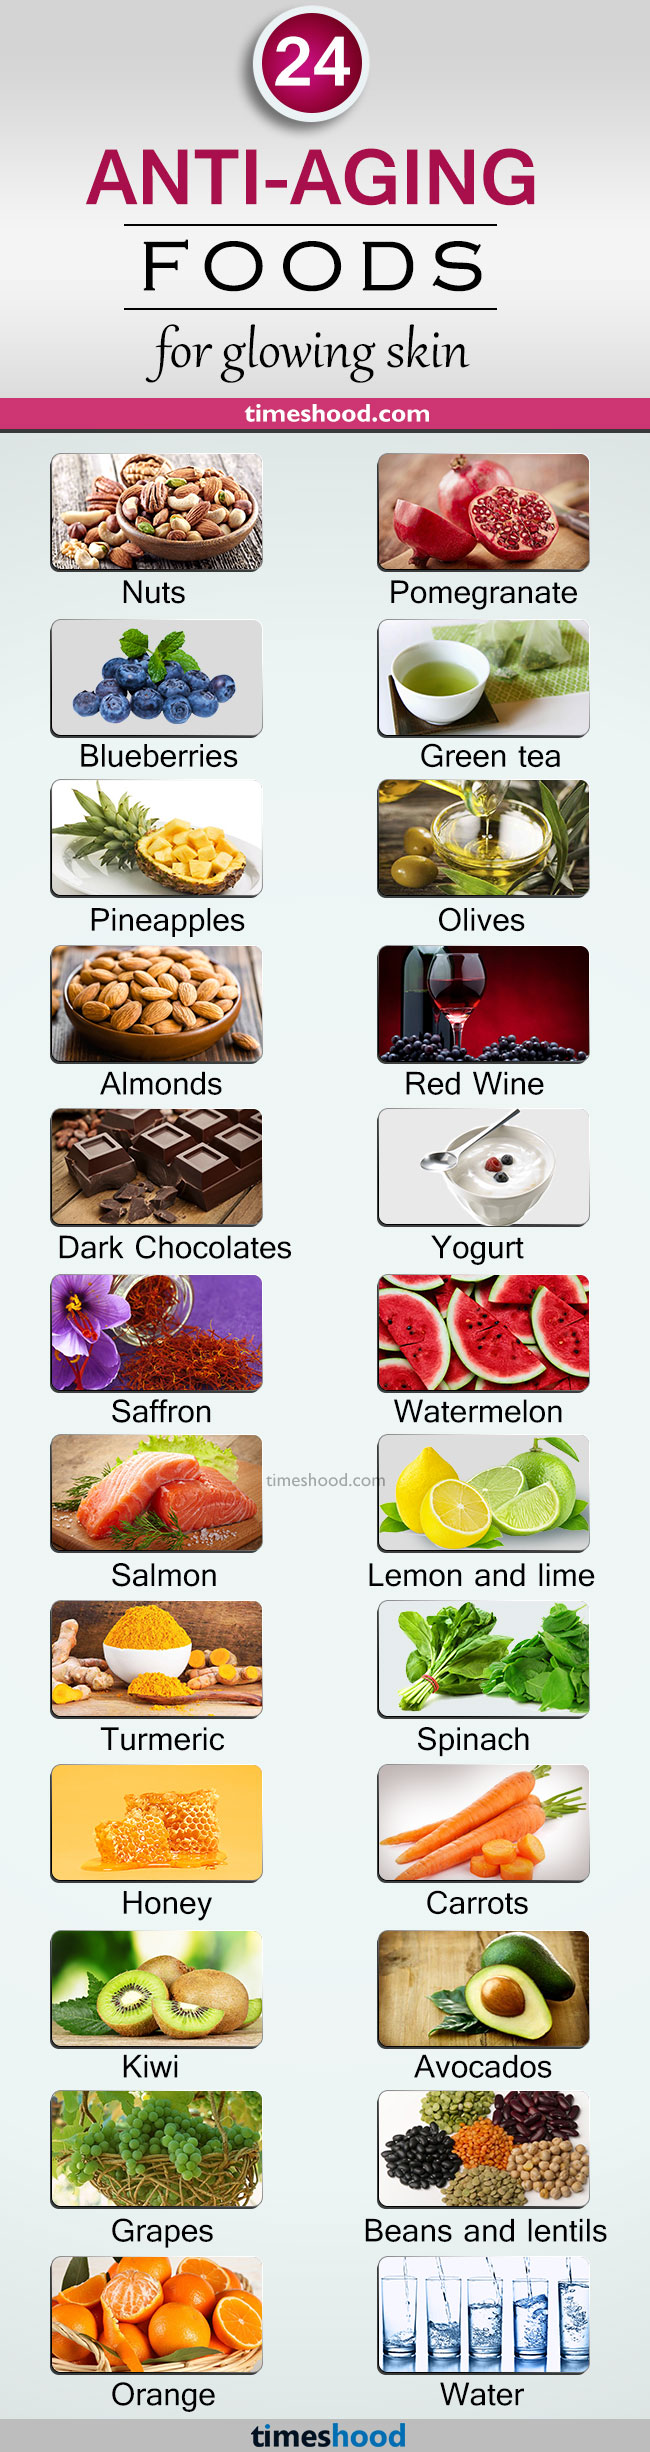 Wrinkle prevention foods